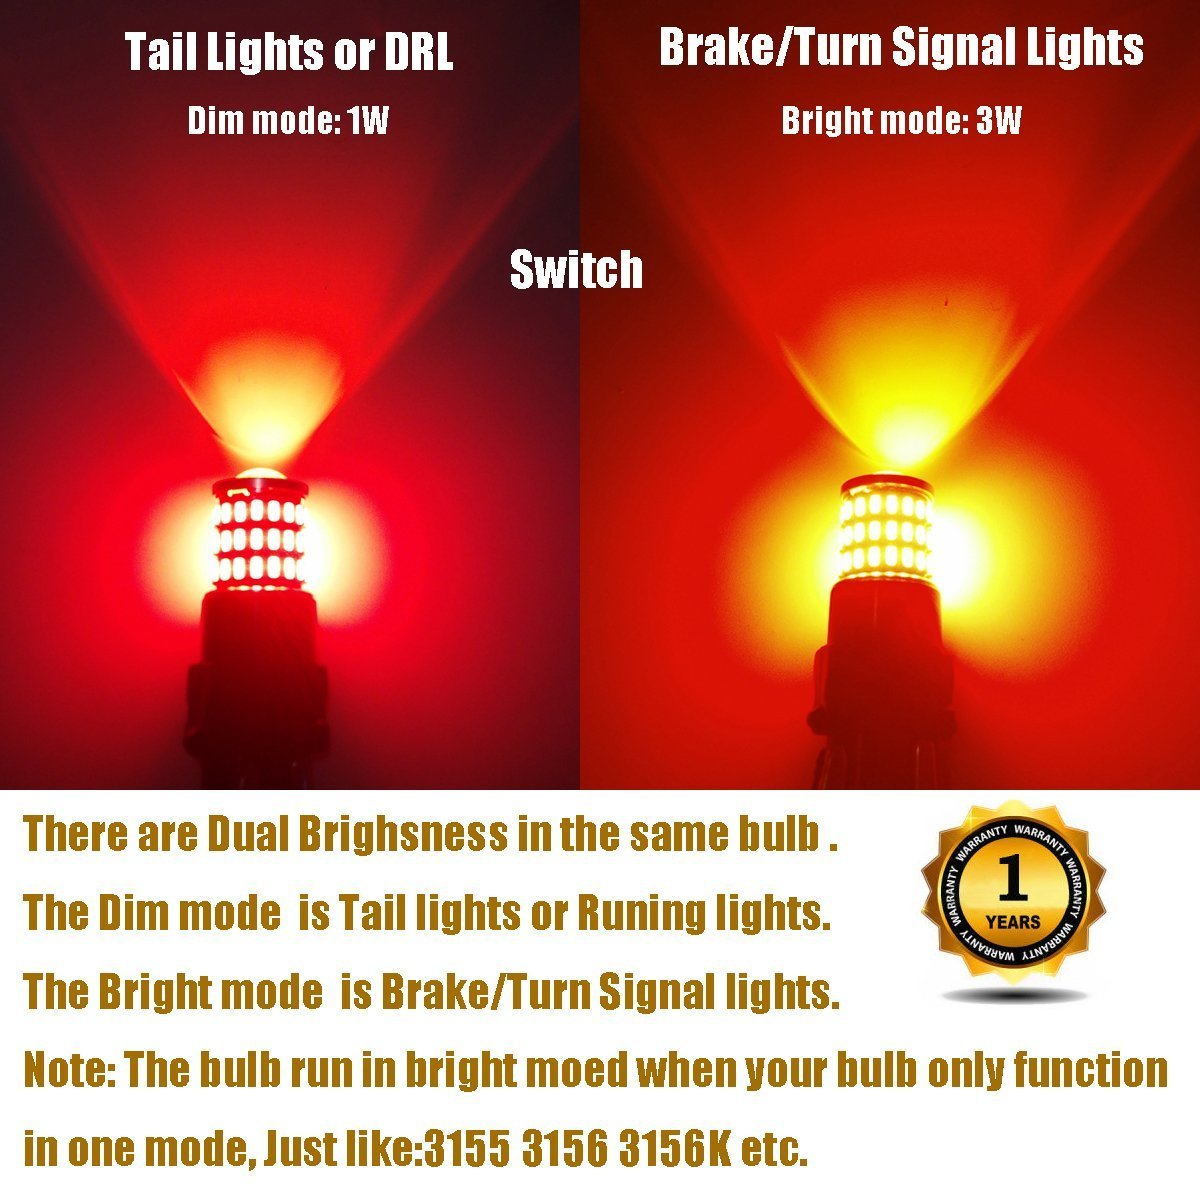 iBrightstar Newest 9-30V Super Bright Low Power Dual Brightness 3156 3157 3056 3057 LED Bulbs with Projector Replacement for Tail Brake Lights,Brilliant Red by iBrightstar (Image #3)